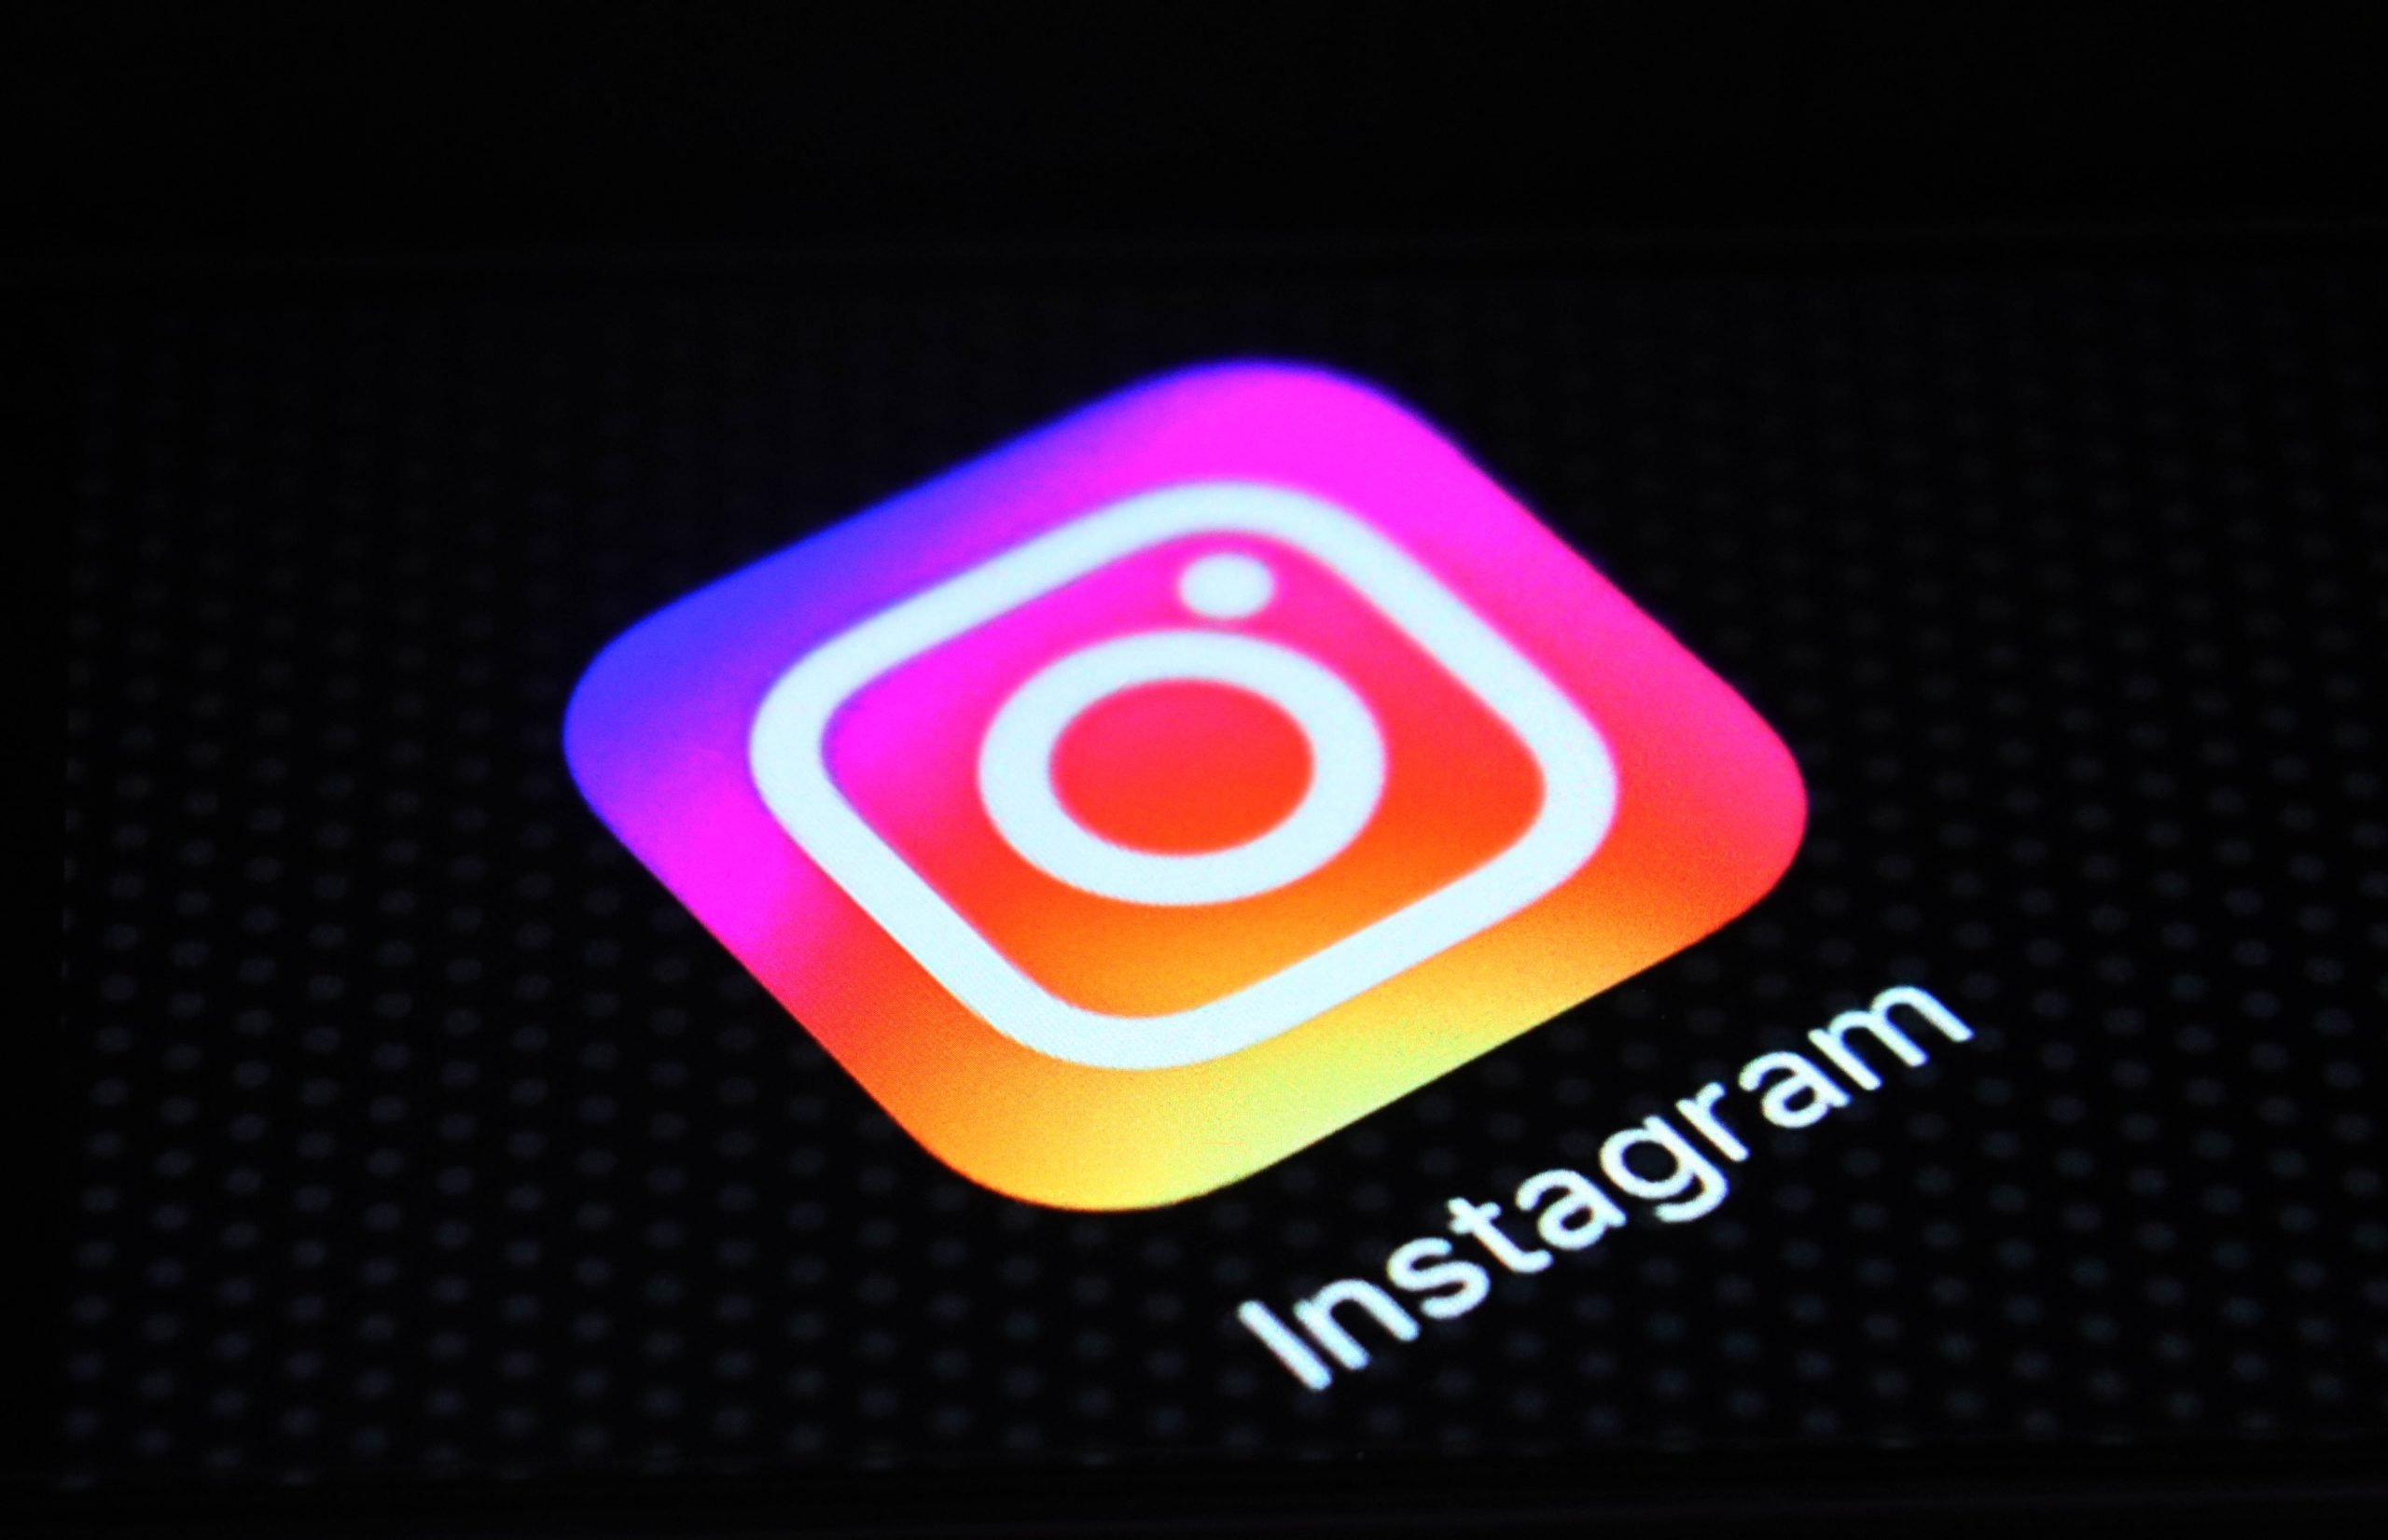 New Instagram update introduces video chat, new camera